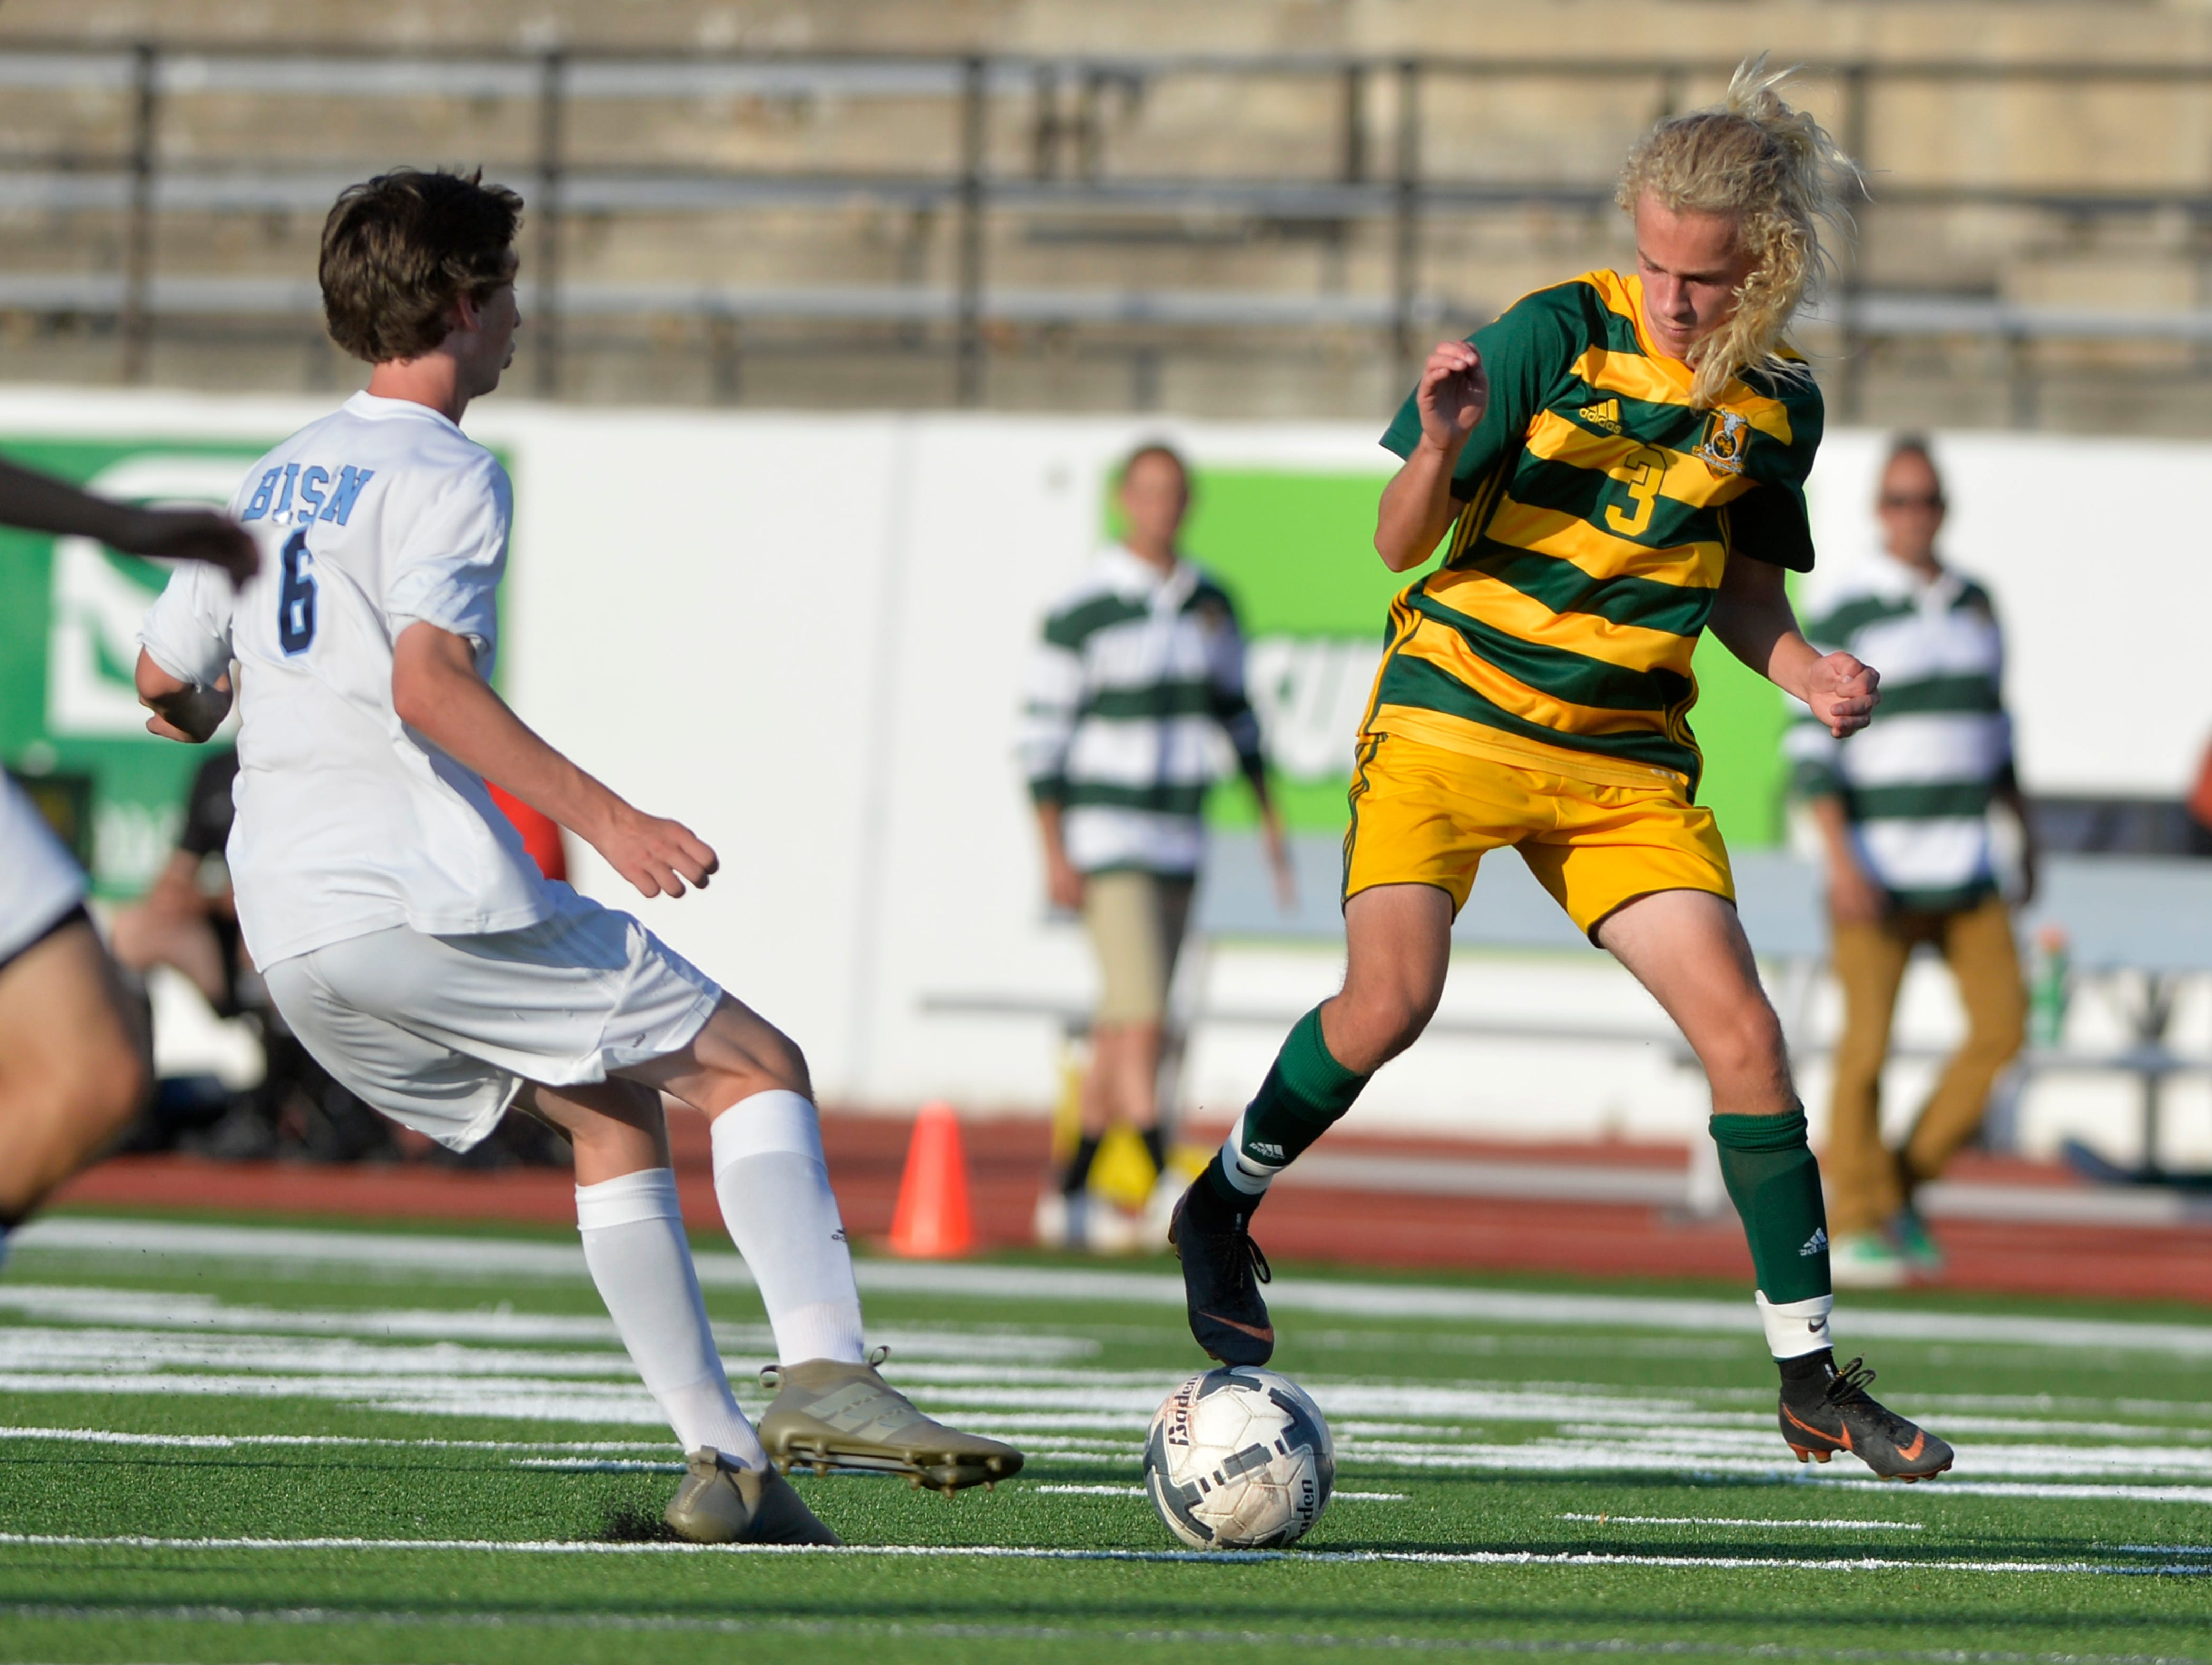 CMR's Ward Cereck attempts to keep the ball away from Great Falls High defenderJacob Murphy during the boys crosstown soccer match at Memorial Stadium, Thursday, Sept. 6, 2018.